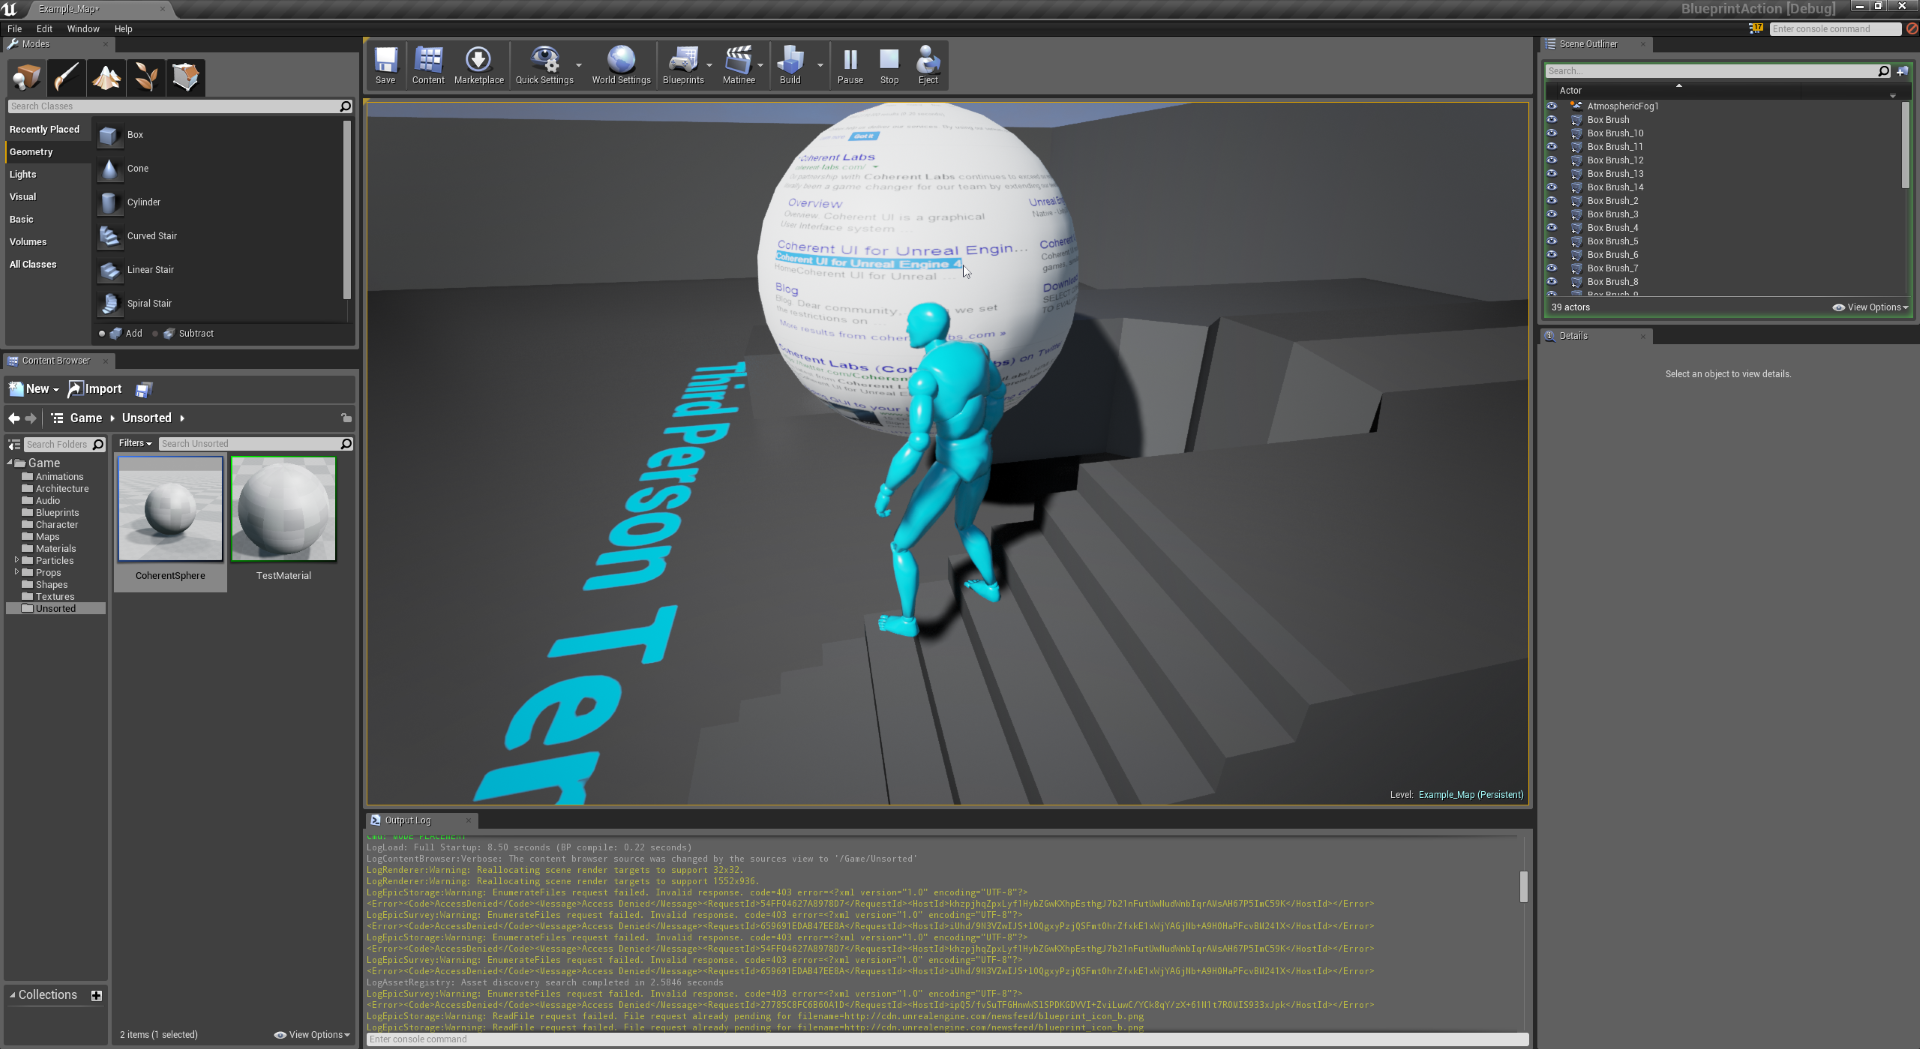 Presenting the unreal engine 4 blueprints support focused coherent ui view in the game malvernweather Images